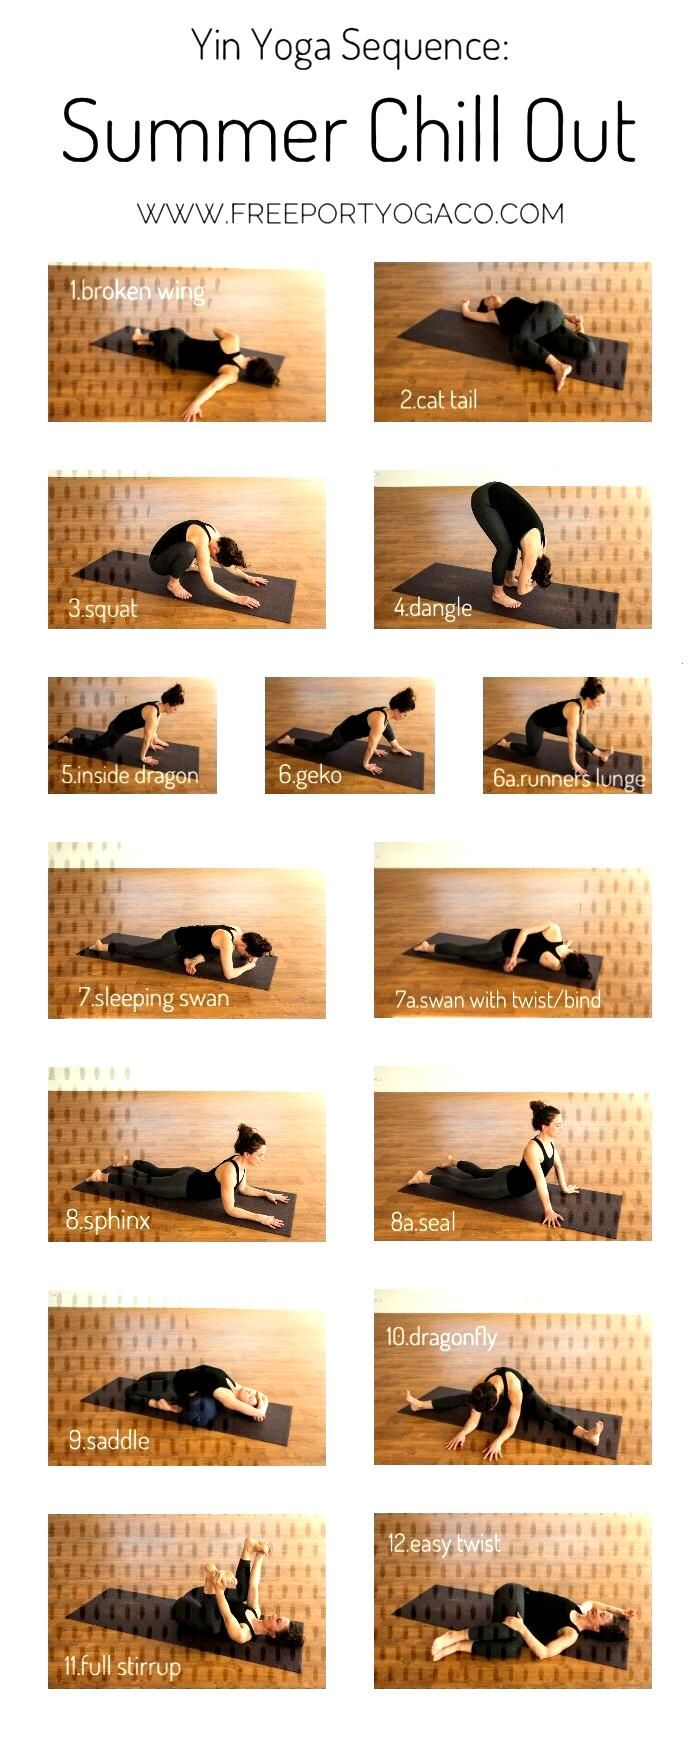 #inspiration #strengthen #exercise #sequence #stretch #fitness #mental #stress #relief #health #pose...